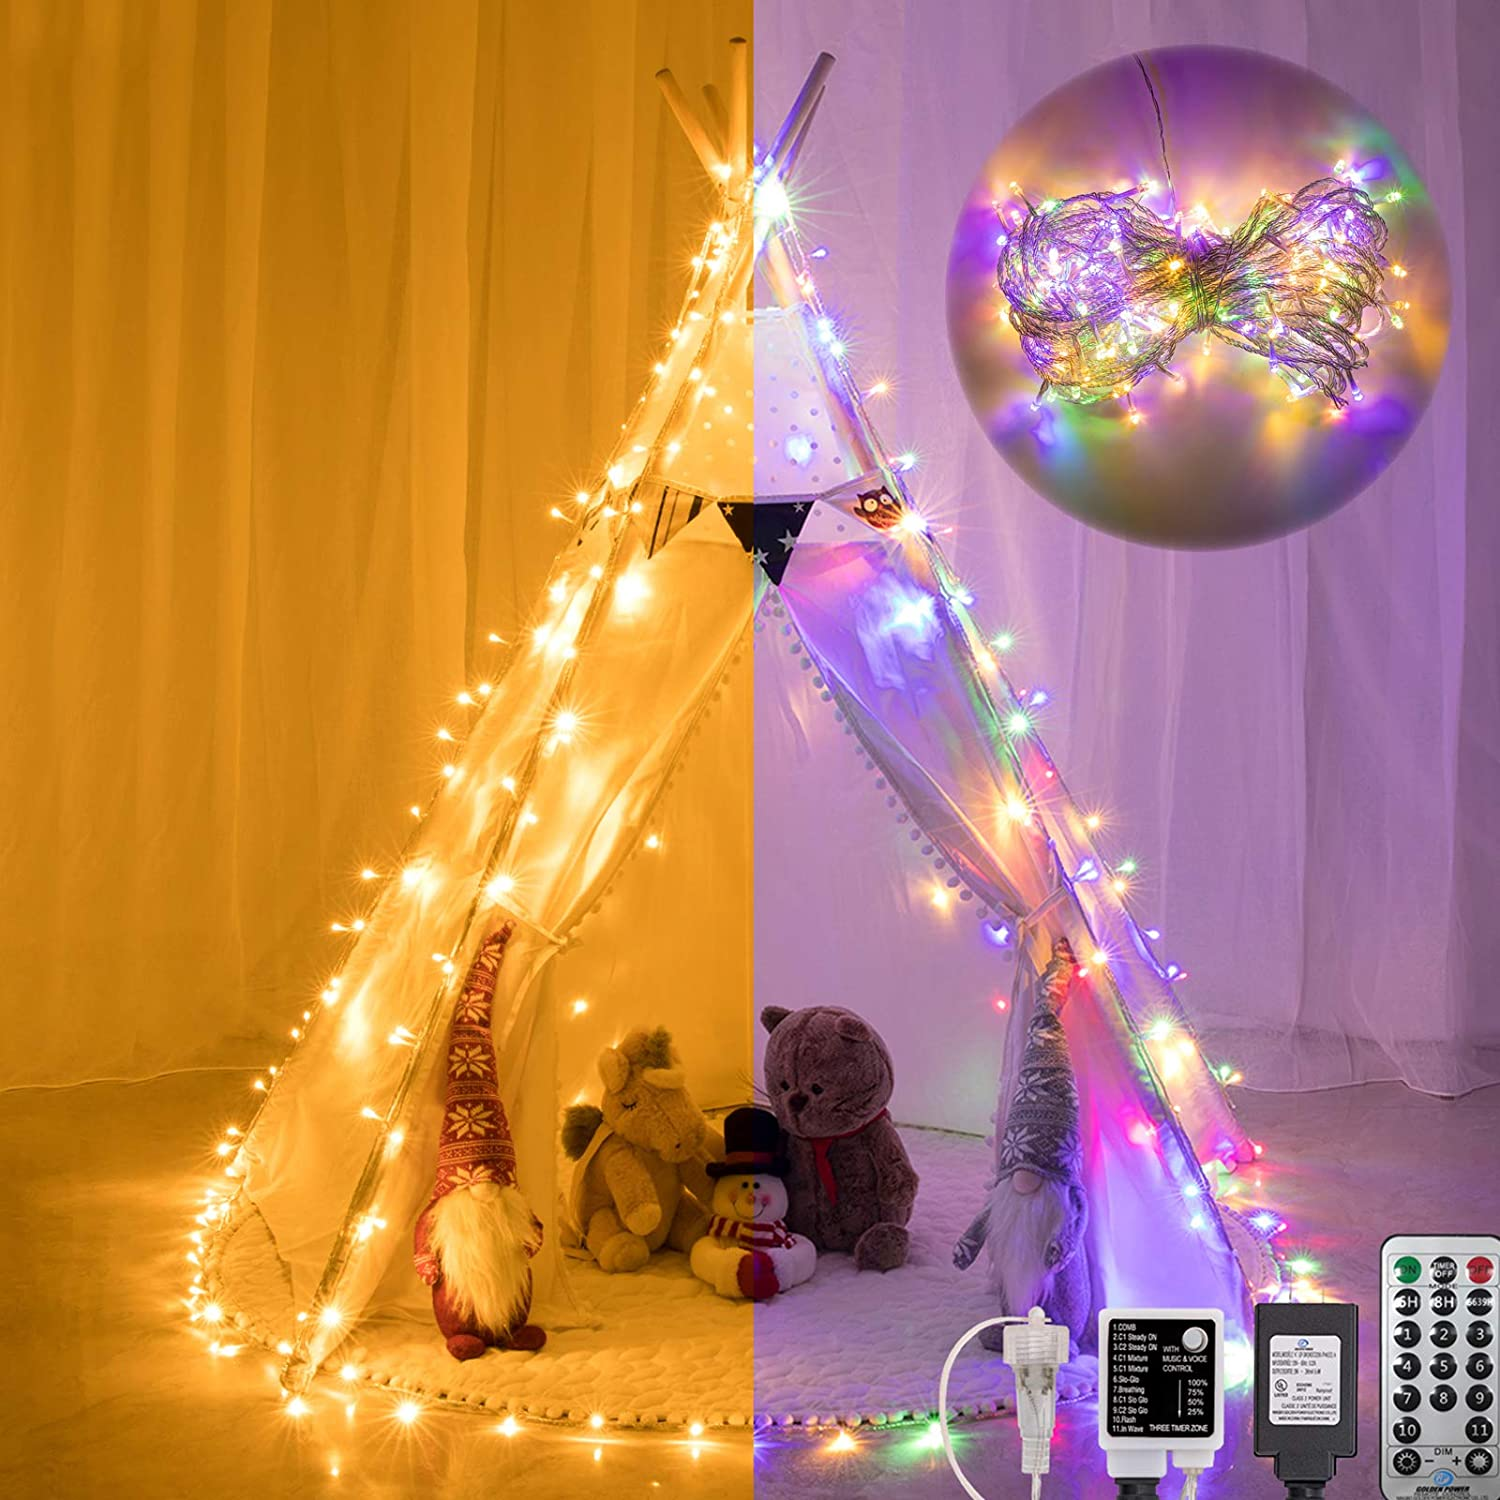 AWQ 66FT 200 LED Christmas Lights Fairy String Lights Plug in 11 Modes Timer Function Waterproof Extendable with Remote Control for Indoor Outdoor Wedding Party Christmas Decor (Warm & Multicolor)